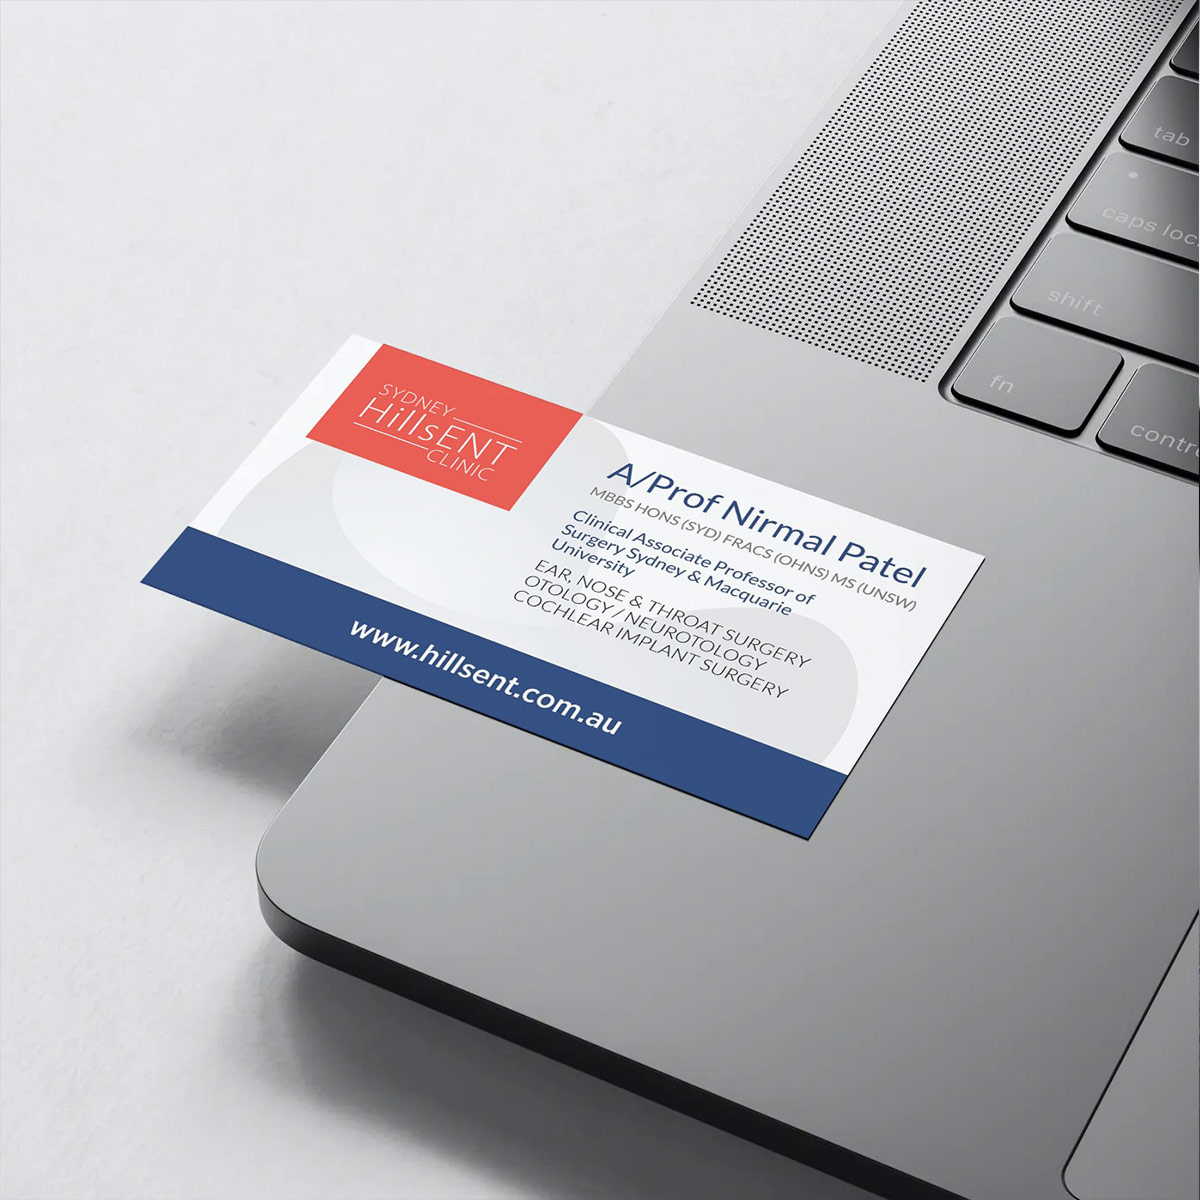 Sydney Hills ENT - Business Card Design